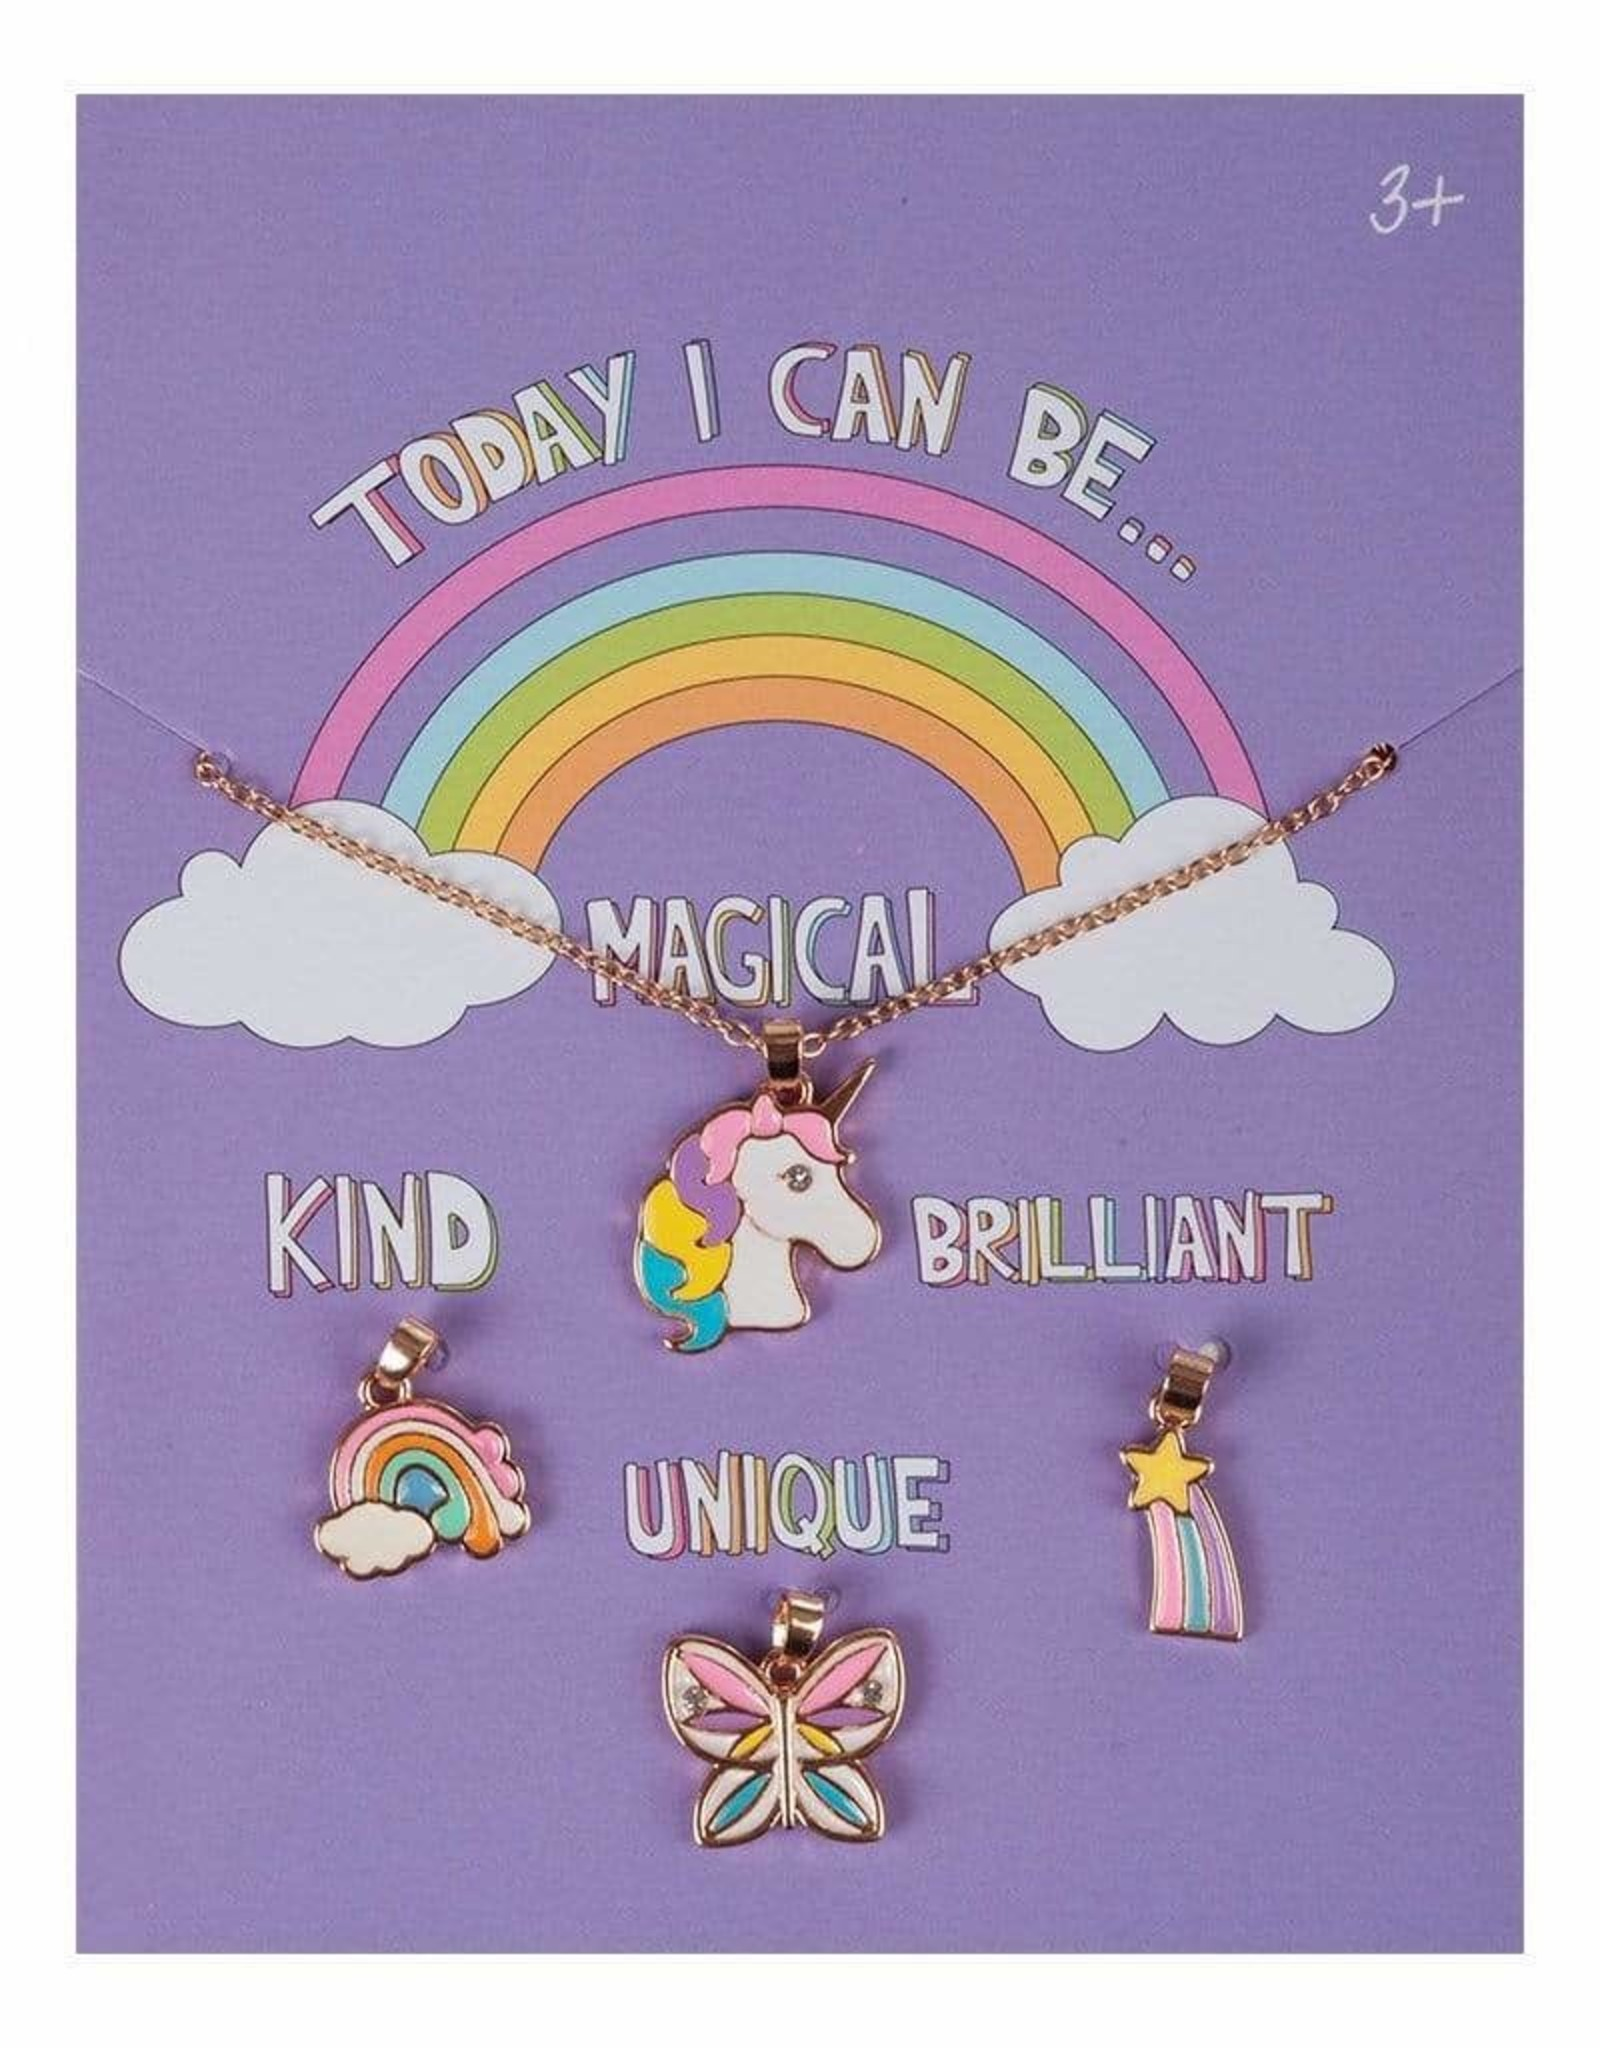 Creative Education Today I Can Be M, K, B AND U - Carded Gift Set